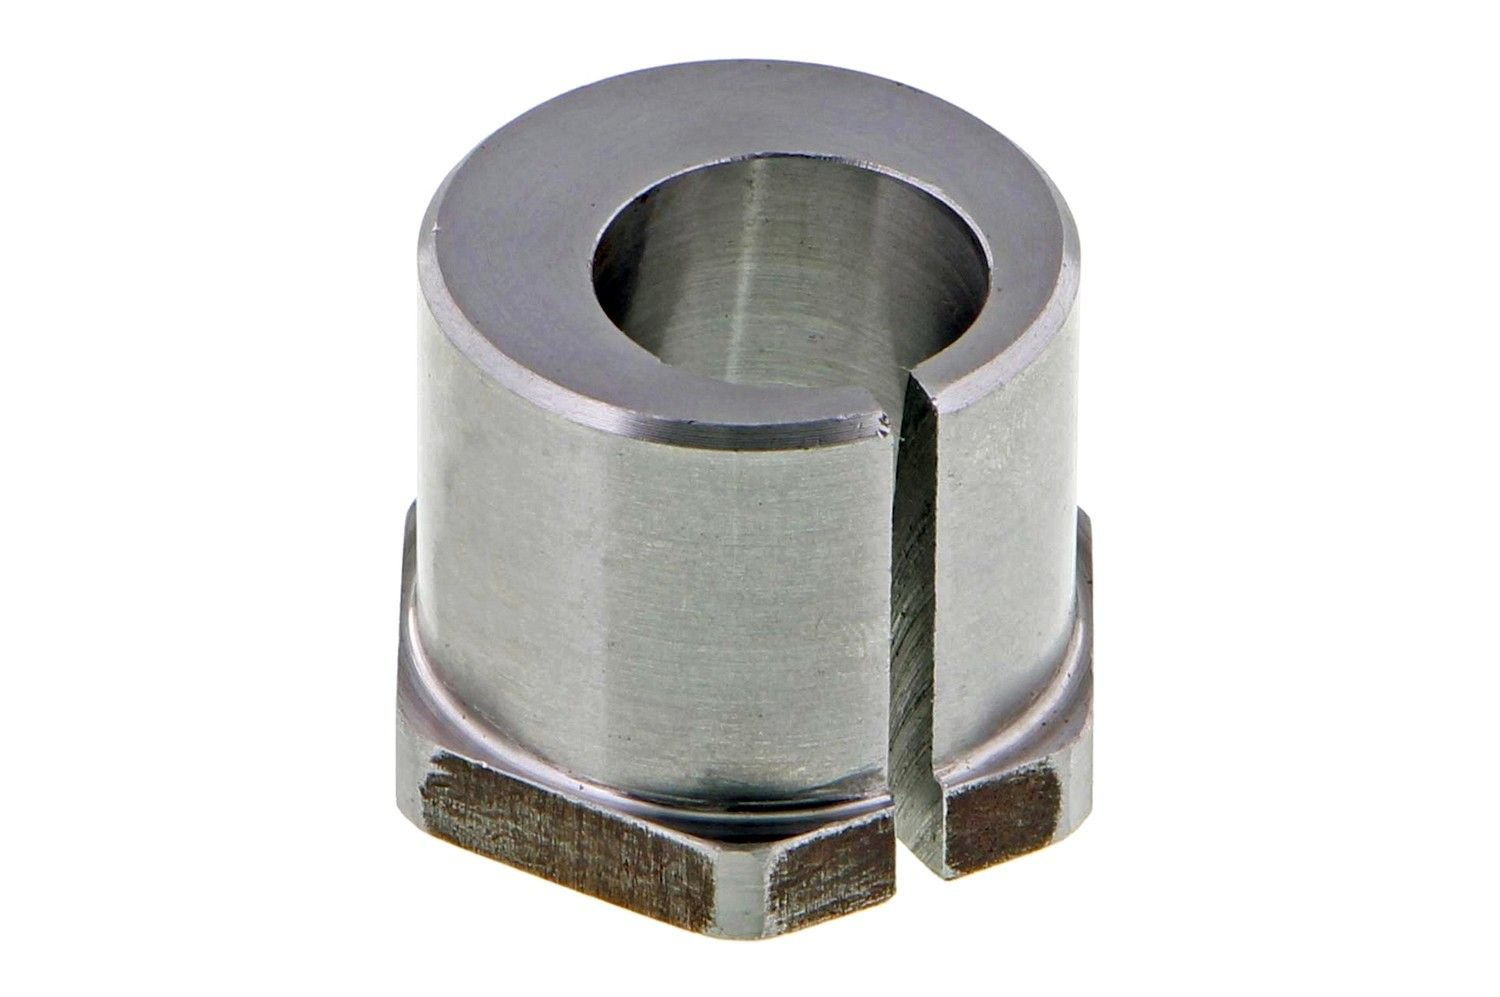 Ford E-350 Super Duty Alignment Caster / Camber Bushing